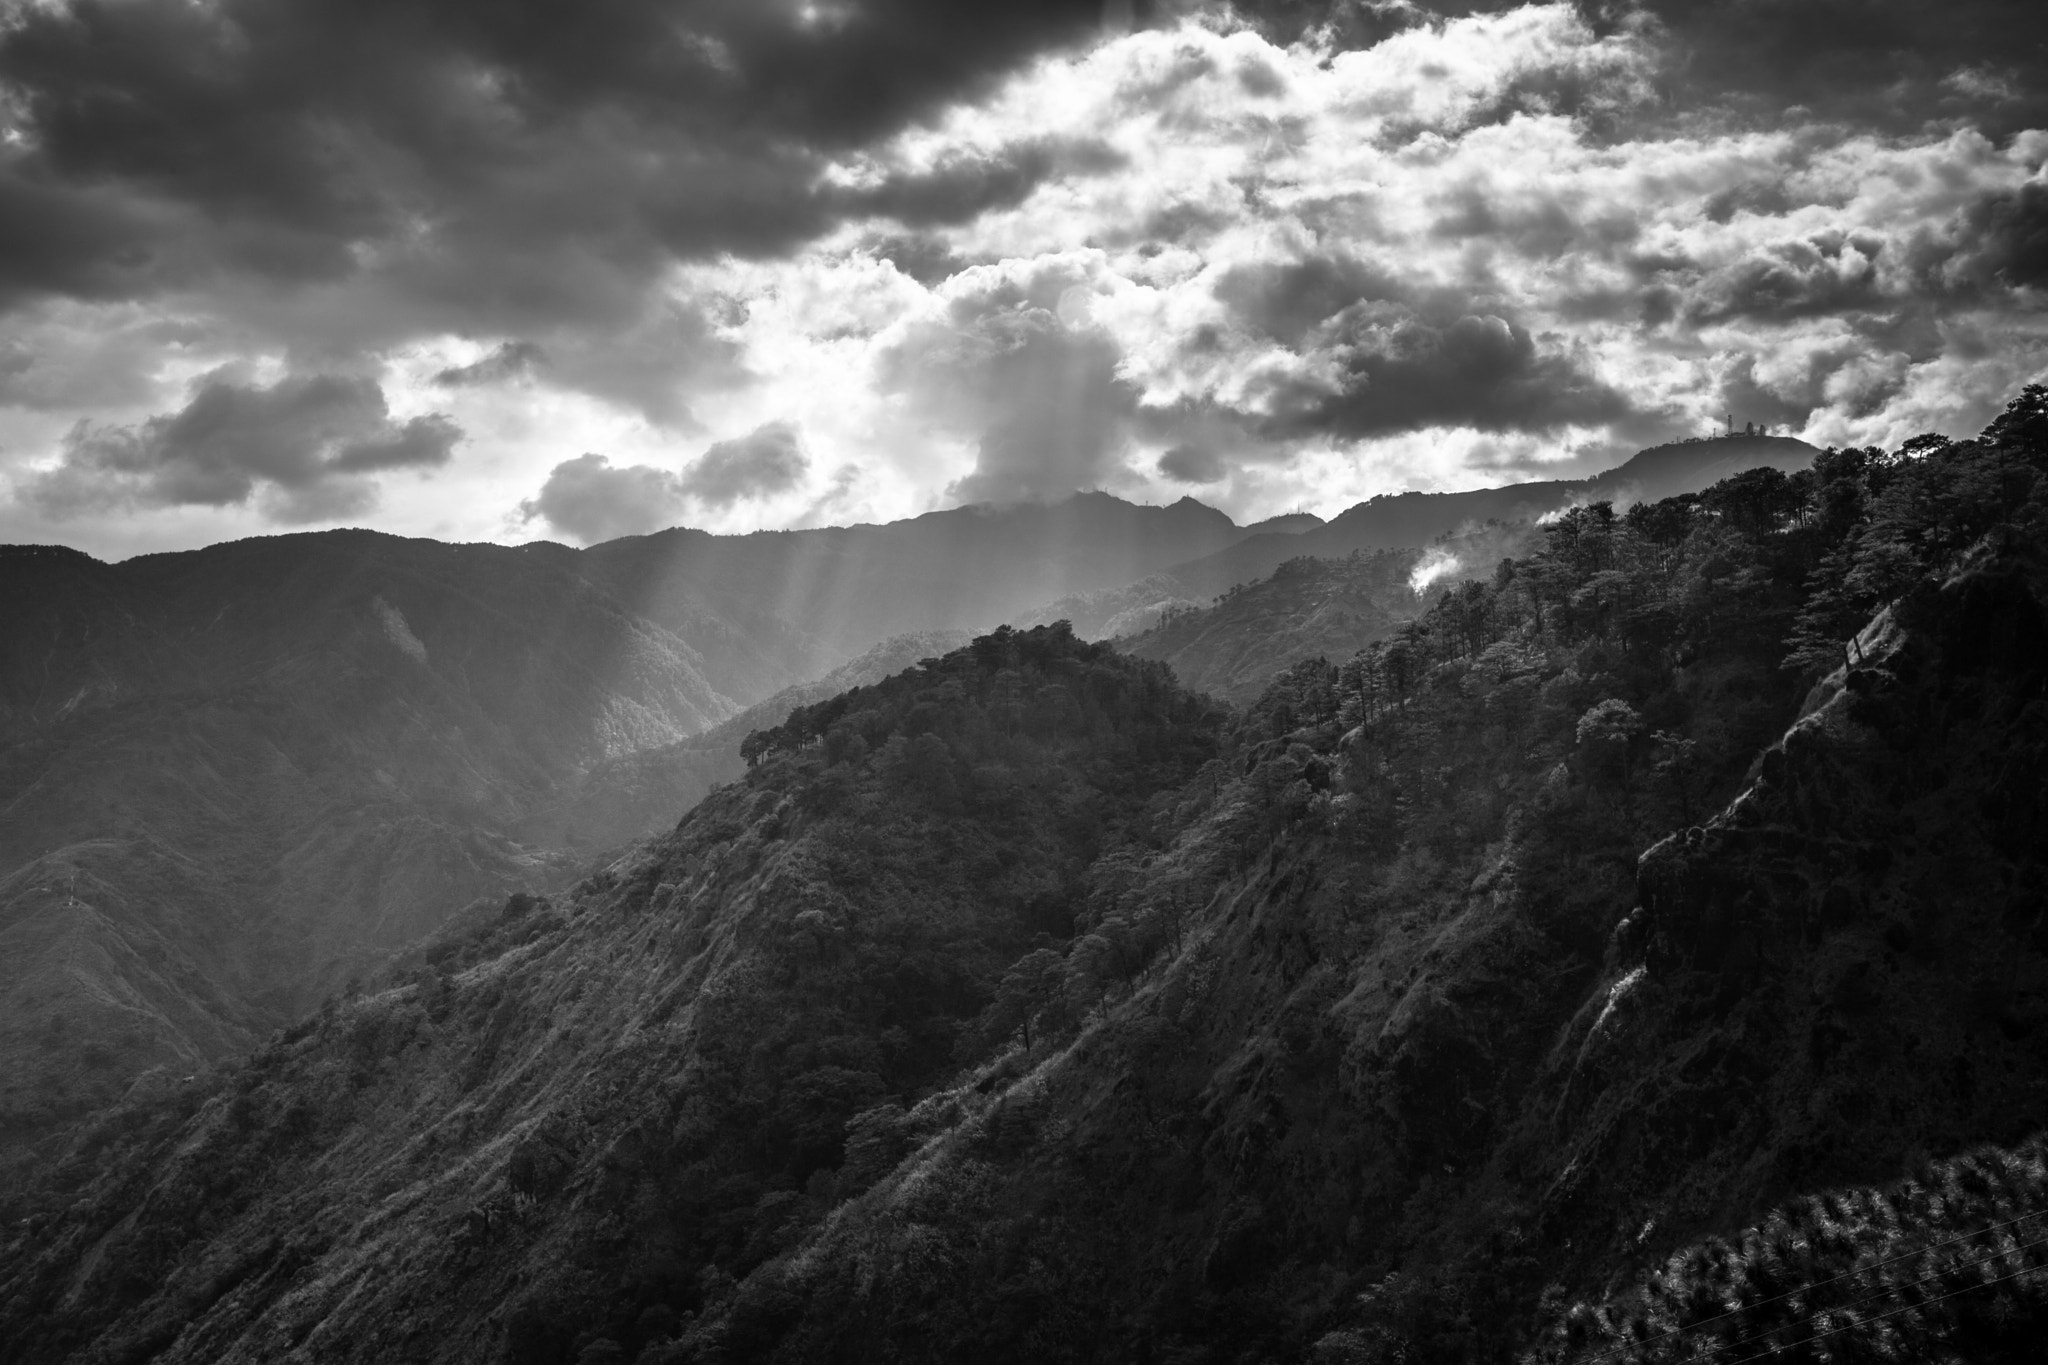 Photograph Kennon Road, Baguio.  by walter wong on 500px